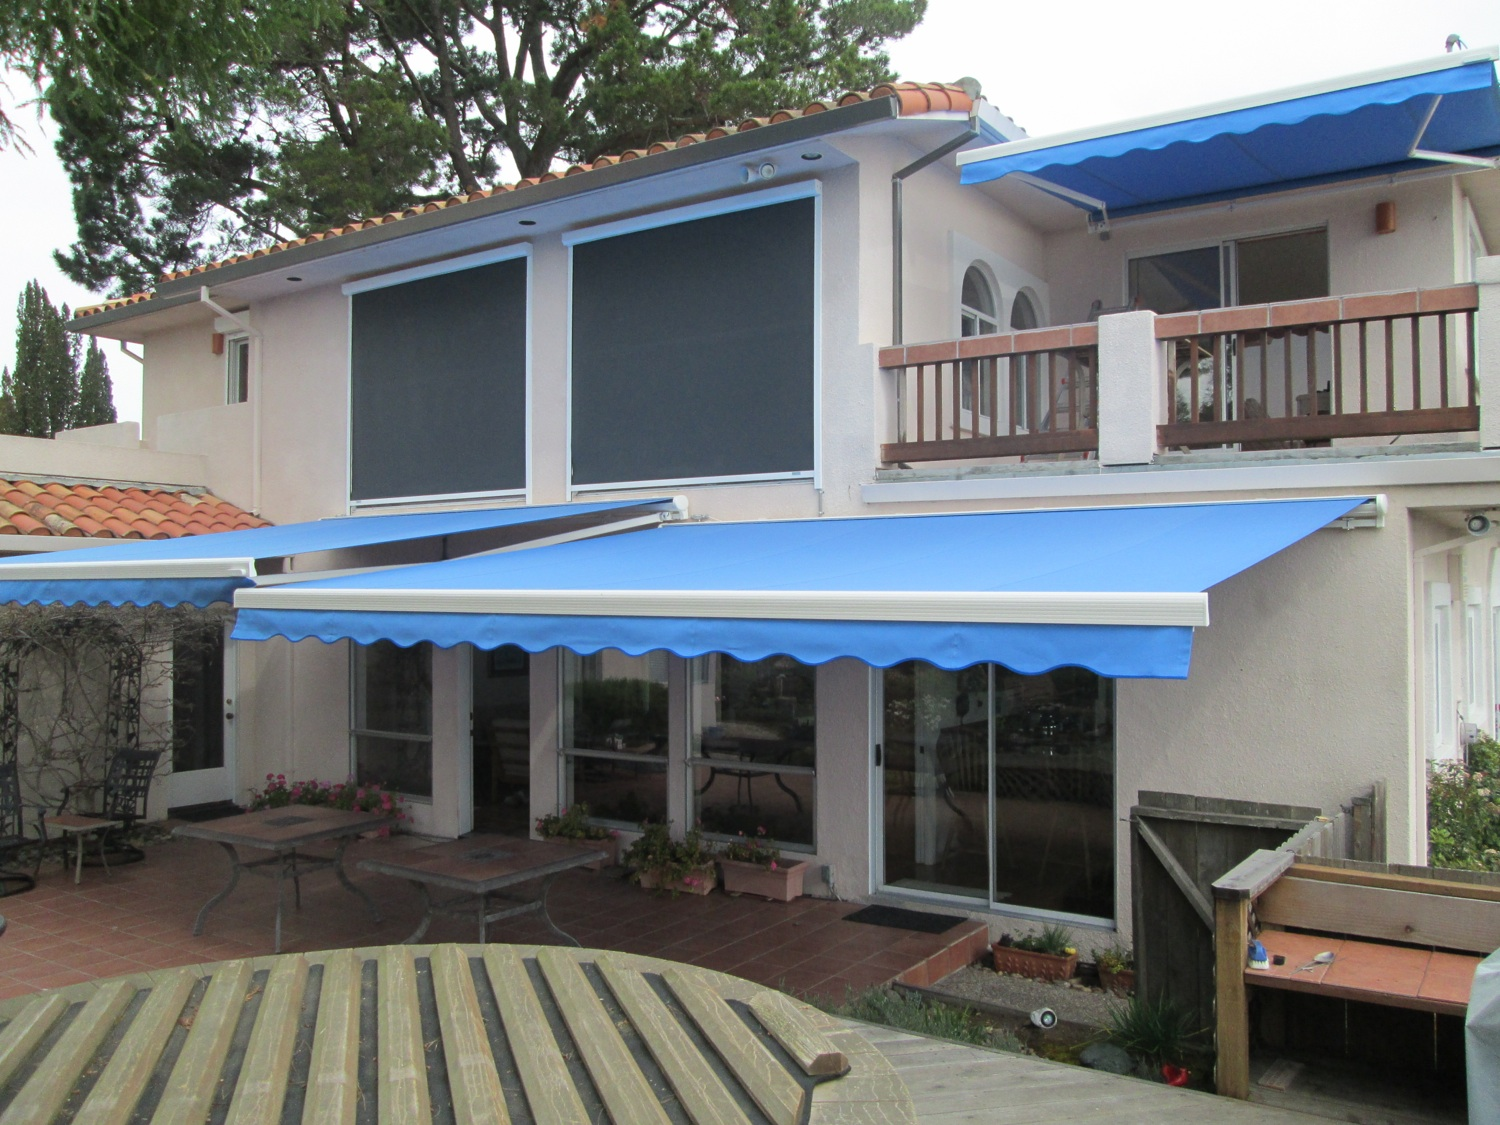 ... Shutters Facility In San Jose, With Premium Materials Shipped In From  Europe. The Retractable Awnings Are Fully Customized For Your Home With Your  Own ...